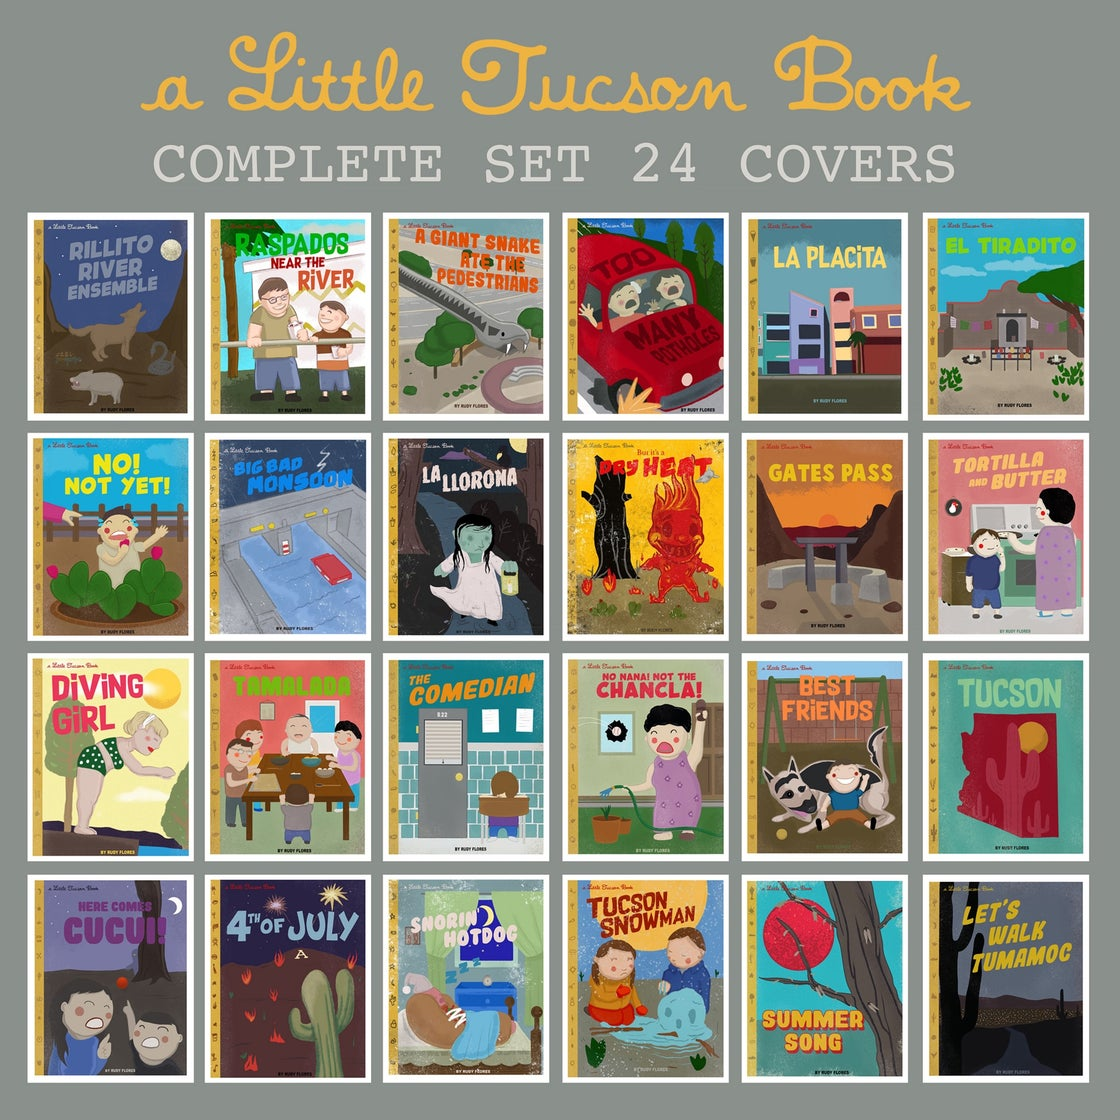 Image of A Little Tucson Book covers Complete Set